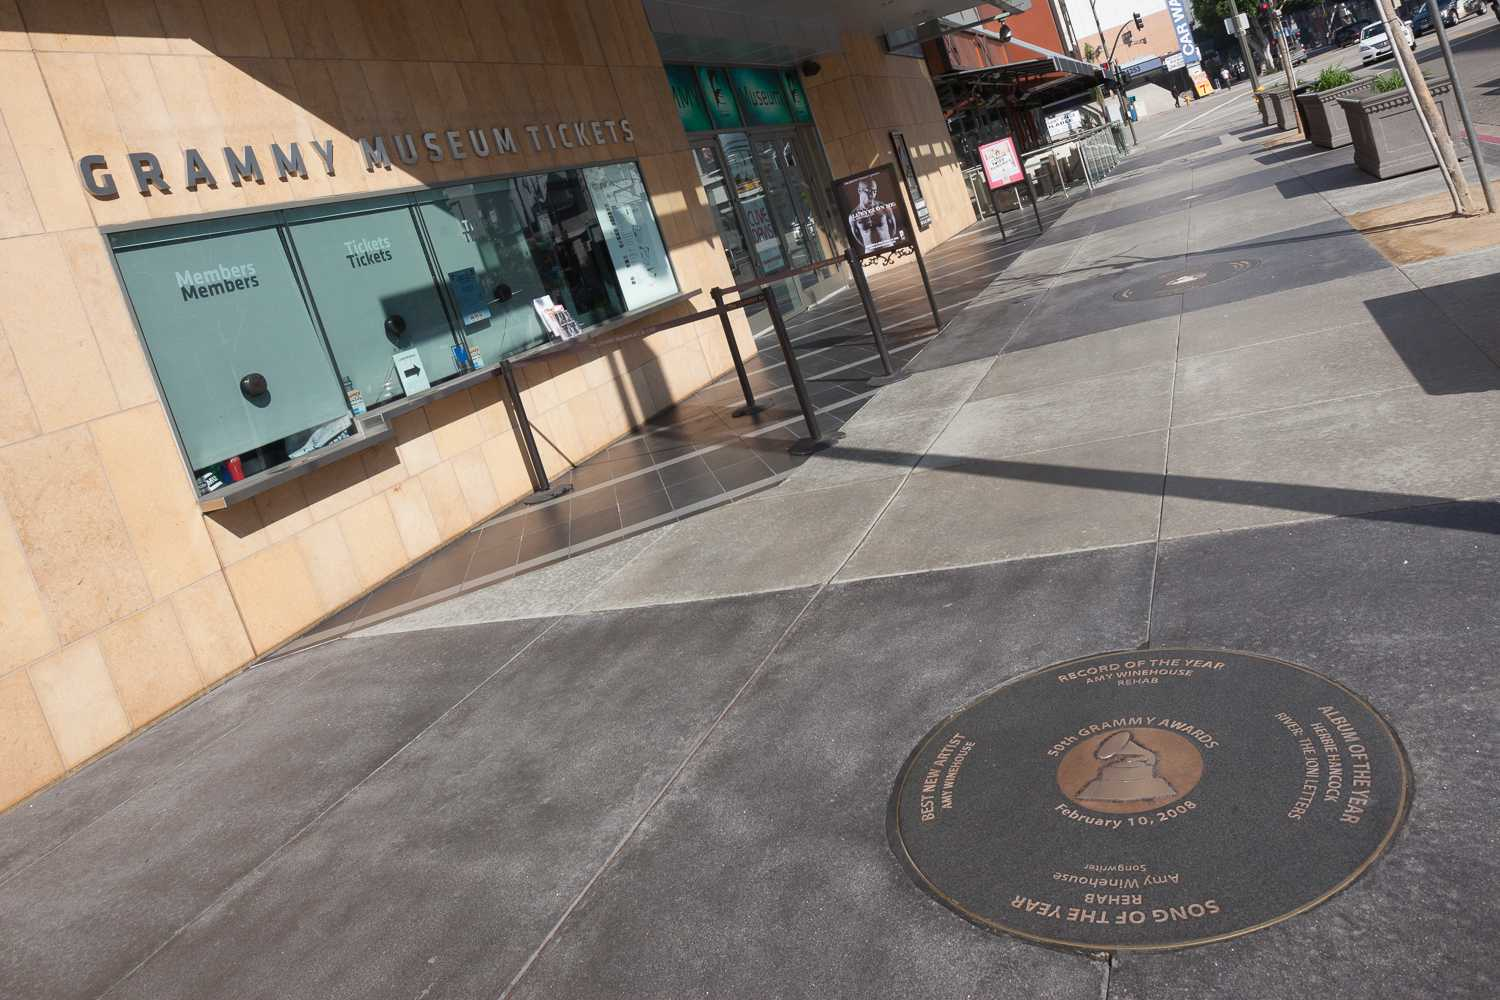 GRAMMY Walk of Fame 2008 Medallion in front of the GRAMMY Museum at L.A. Live